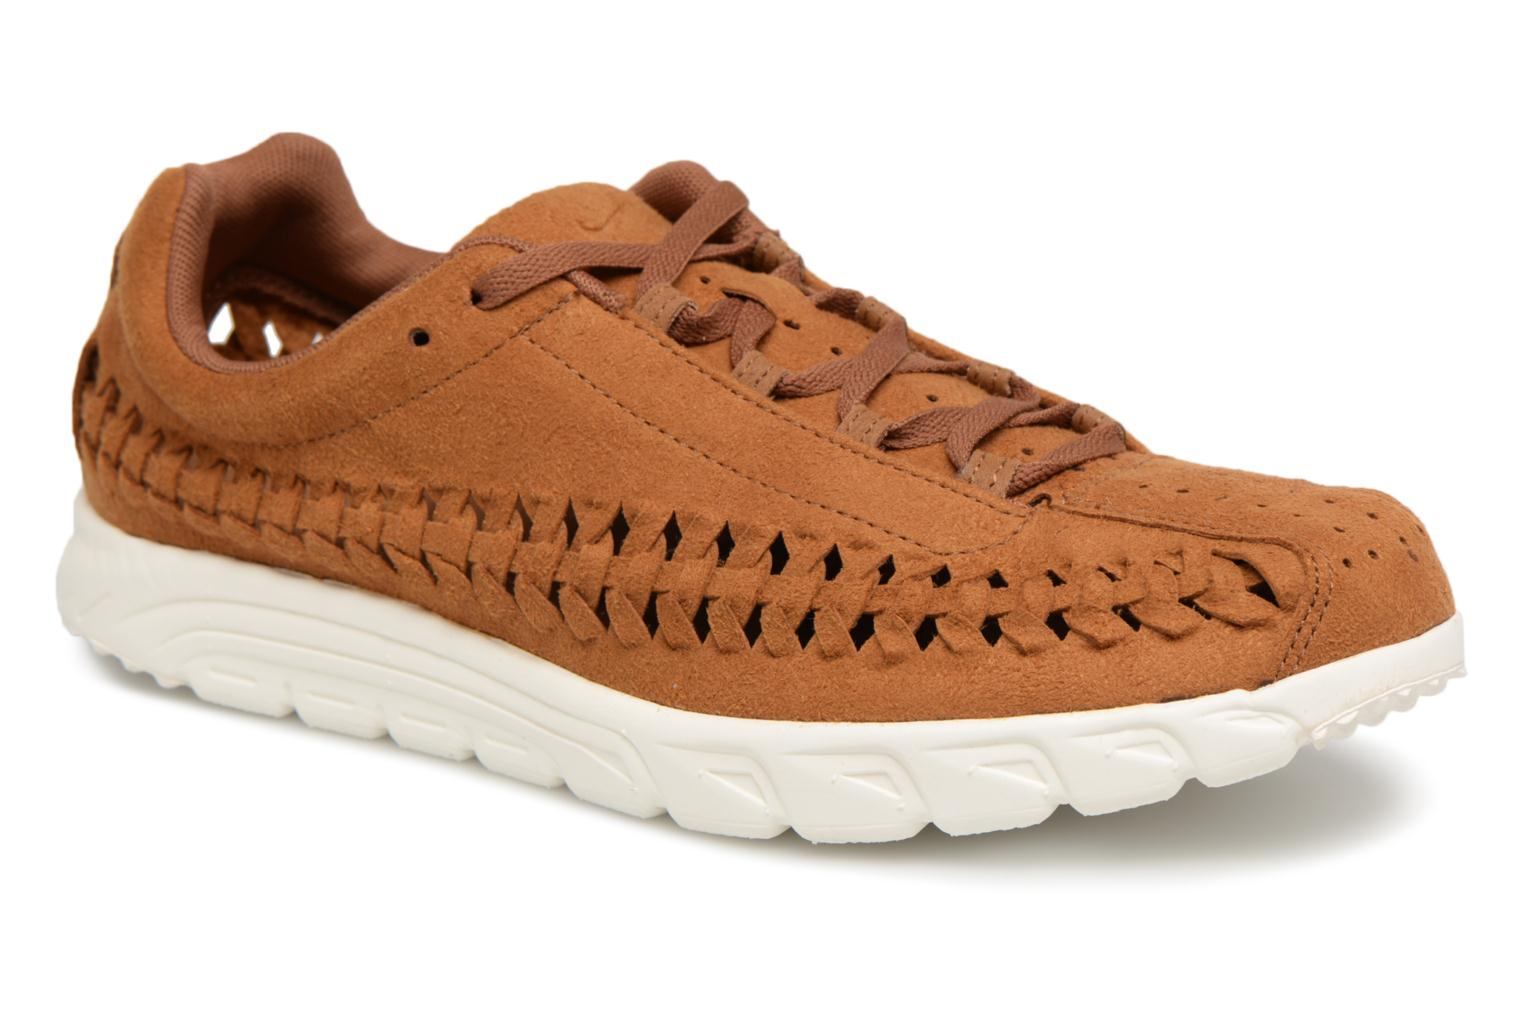 Marques Chaussure homme Nike homme Nike Mayfly Woven Ale Brown/Sail